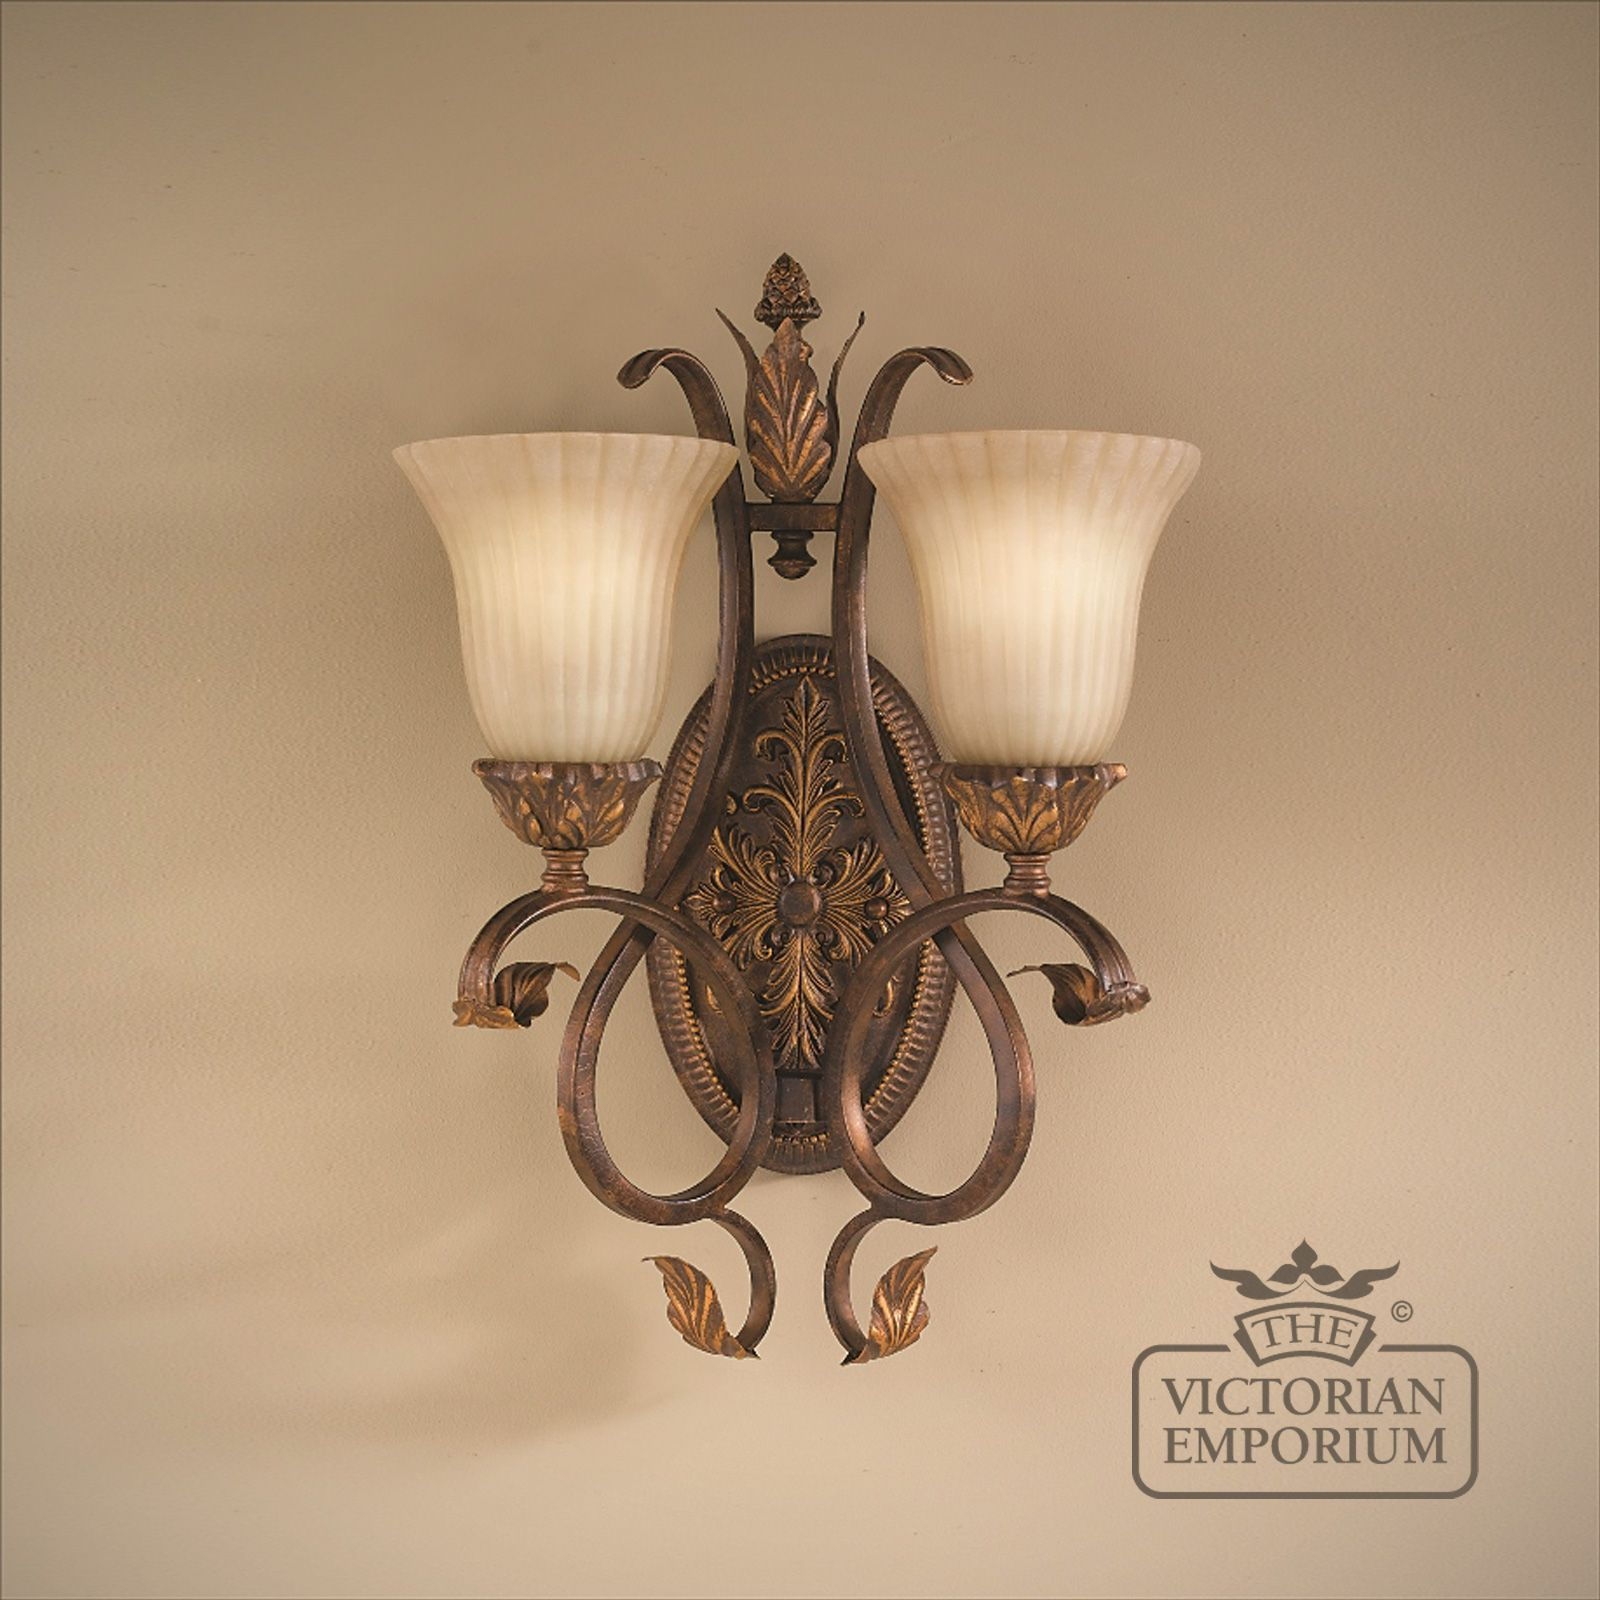 Reproduction victorian wallpaper guide the victorian emporium - Sonoma Twin Wall Sconce Sonoma Twin Wall Sconce